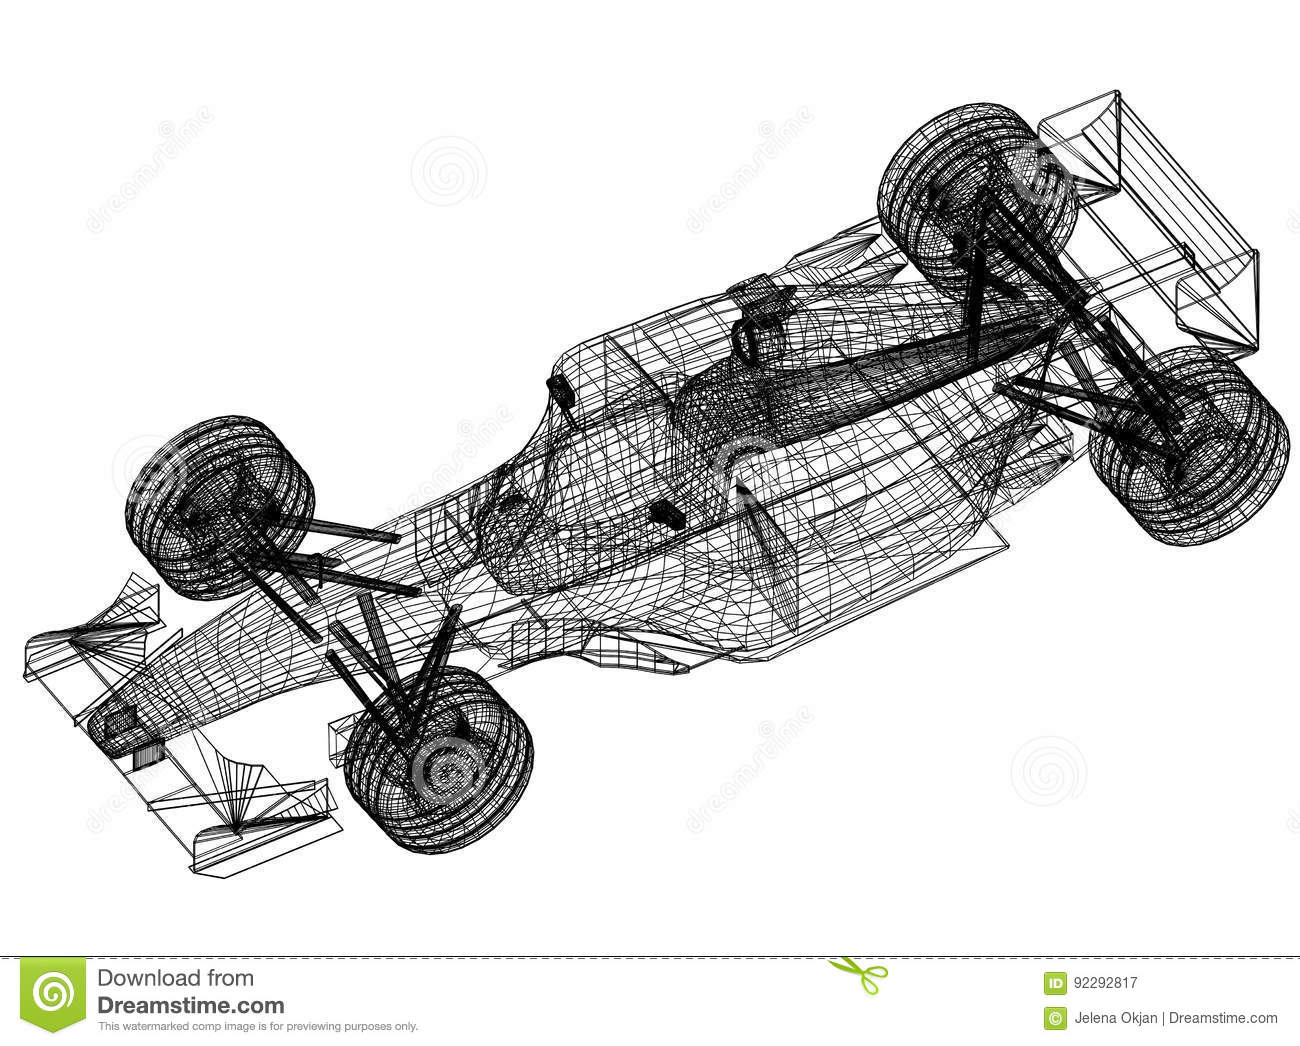 Sport race car blueprint 3d perspective stock illustration download sport race car blueprint 3d perspective stock illustration illustration of blueprint design malvernweather Images